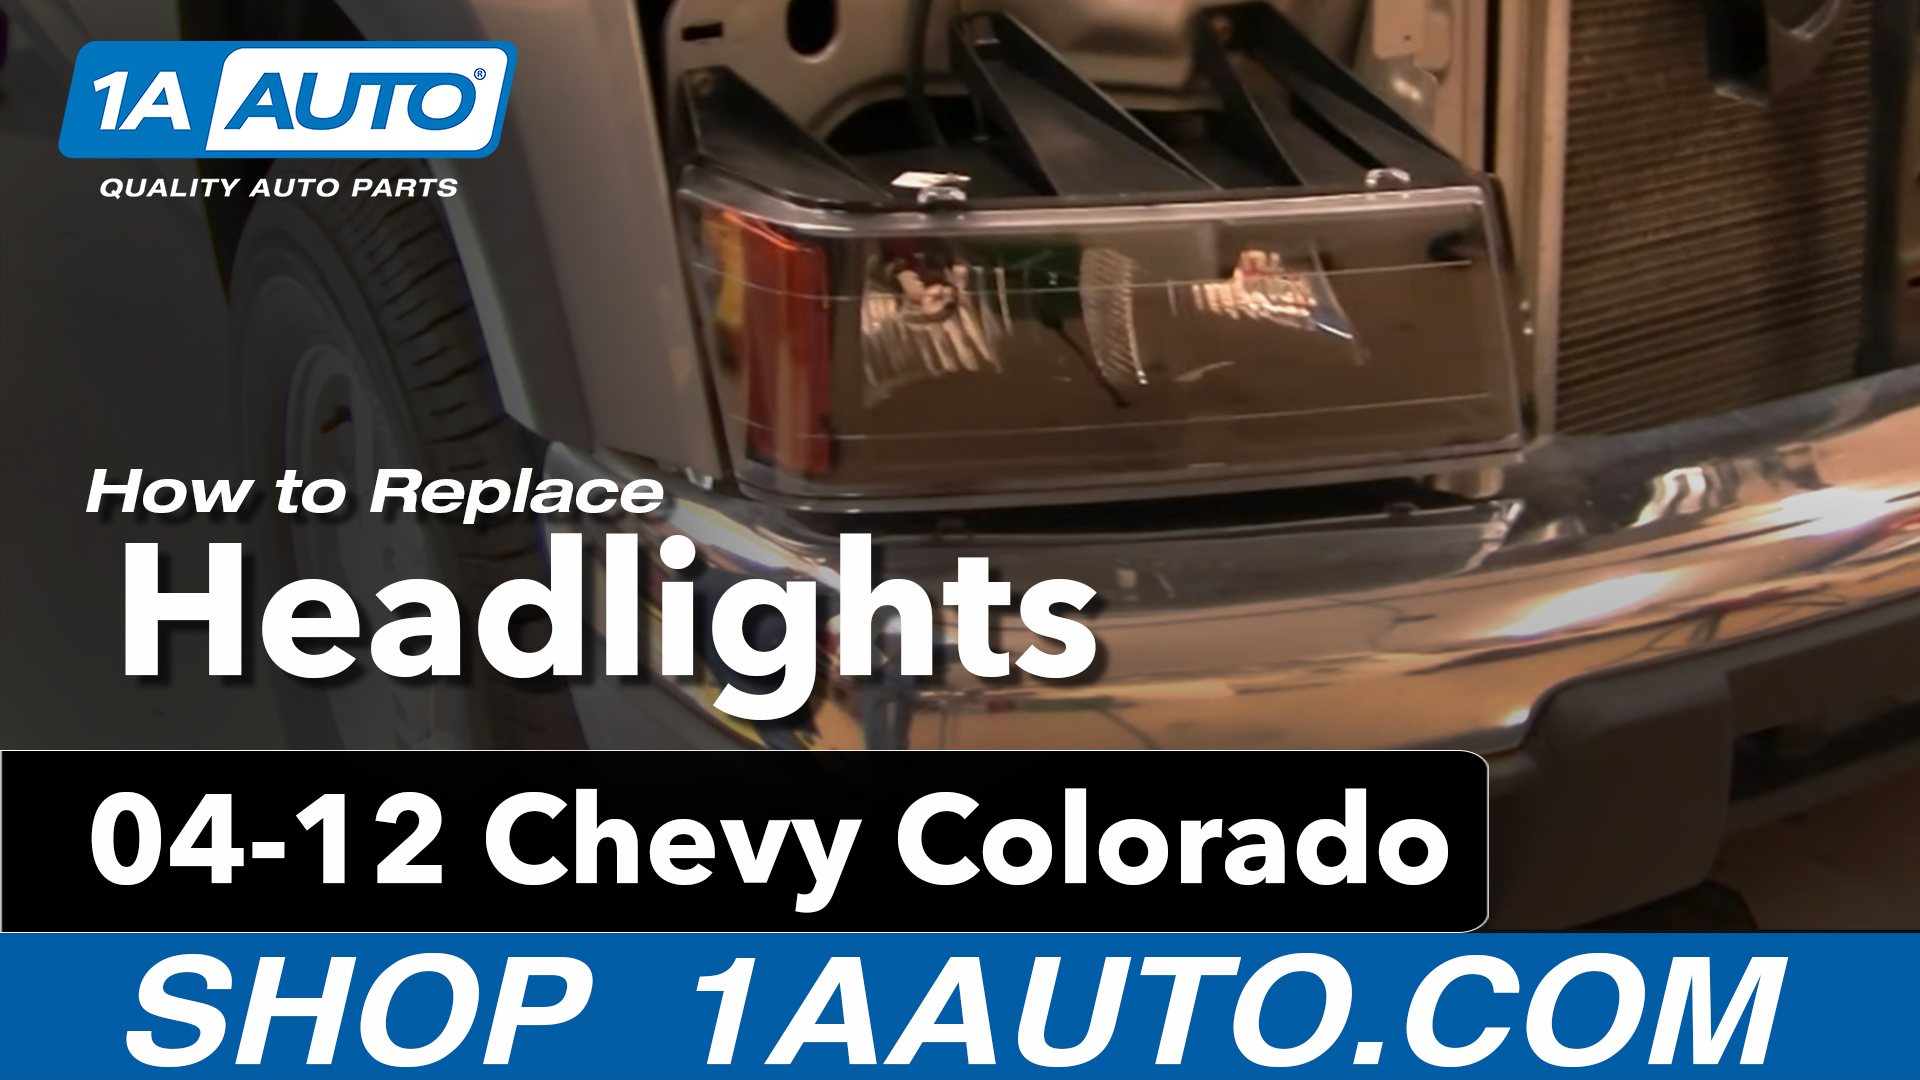 How to Replace Headlight 04-12 Chevy Colorado | 1A Auto  Chevy Colorado Wiring Diagram on gmc jimmy wiring diagram, cadillac srx wiring diagram, ford thunderbird wiring diagram, oldsmobile cutlass wiring diagram, chevy colorado speedometer, 2007 colorado wiring diagram, gm headlight switch wiring diagram, dodge magnum wiring diagram, turn signal wiring diagram, 04 colorado wiring diagram, buick lacrosse wiring diagram, buick rainier wiring diagram, dodge challenger wiring diagram, 2004 colorado wiring diagram, nissan titan wiring diagram, volkswagen golf wiring diagram, chevy colorado coil, chevy colorado oil pump, mercury milan wiring diagram, buick enclave wiring diagram,